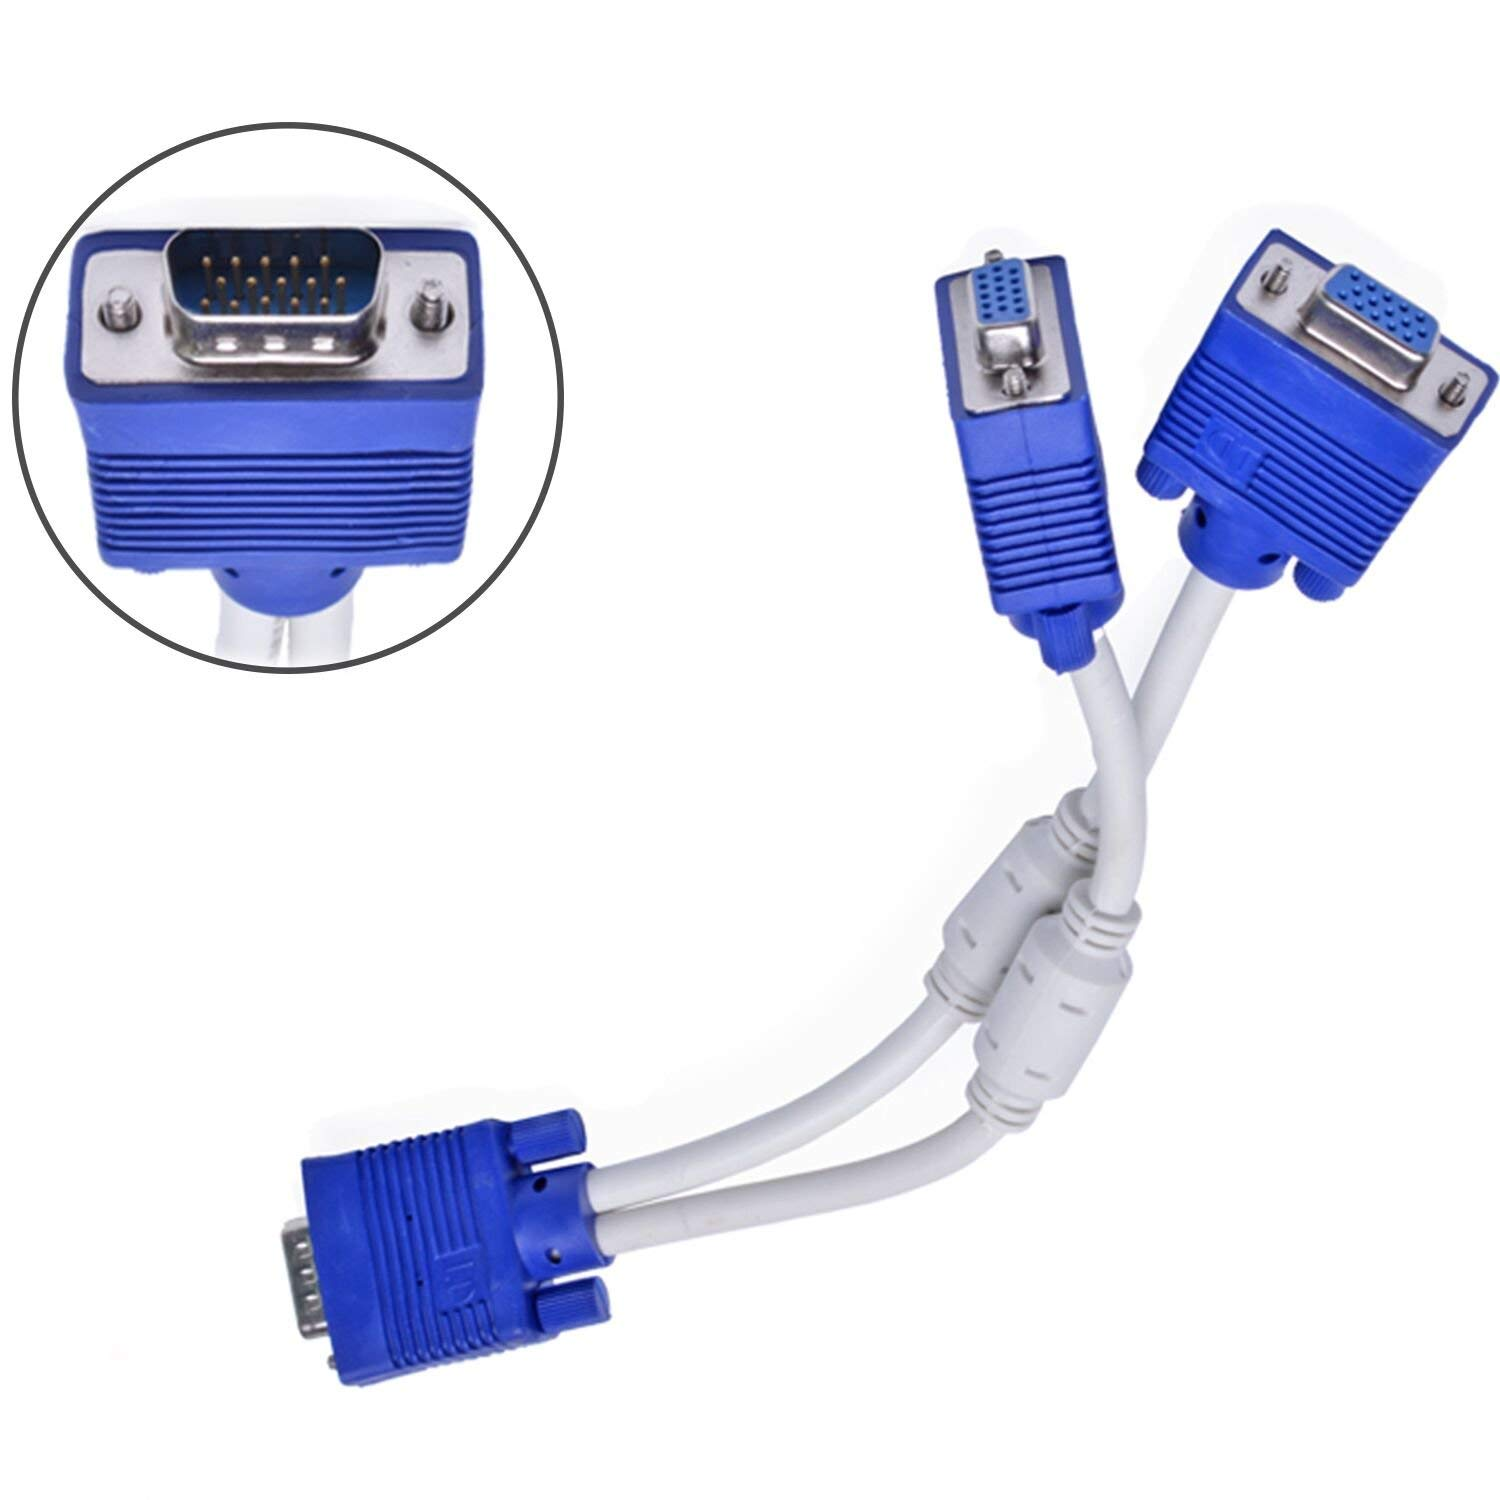 cheap dual monitor adapter vga find dual monitor adapter vga deals Dual Microphone Cable get quotations apoi 15 pin vga 1 male to dual 2 vga female monitor y adapter converter splitter